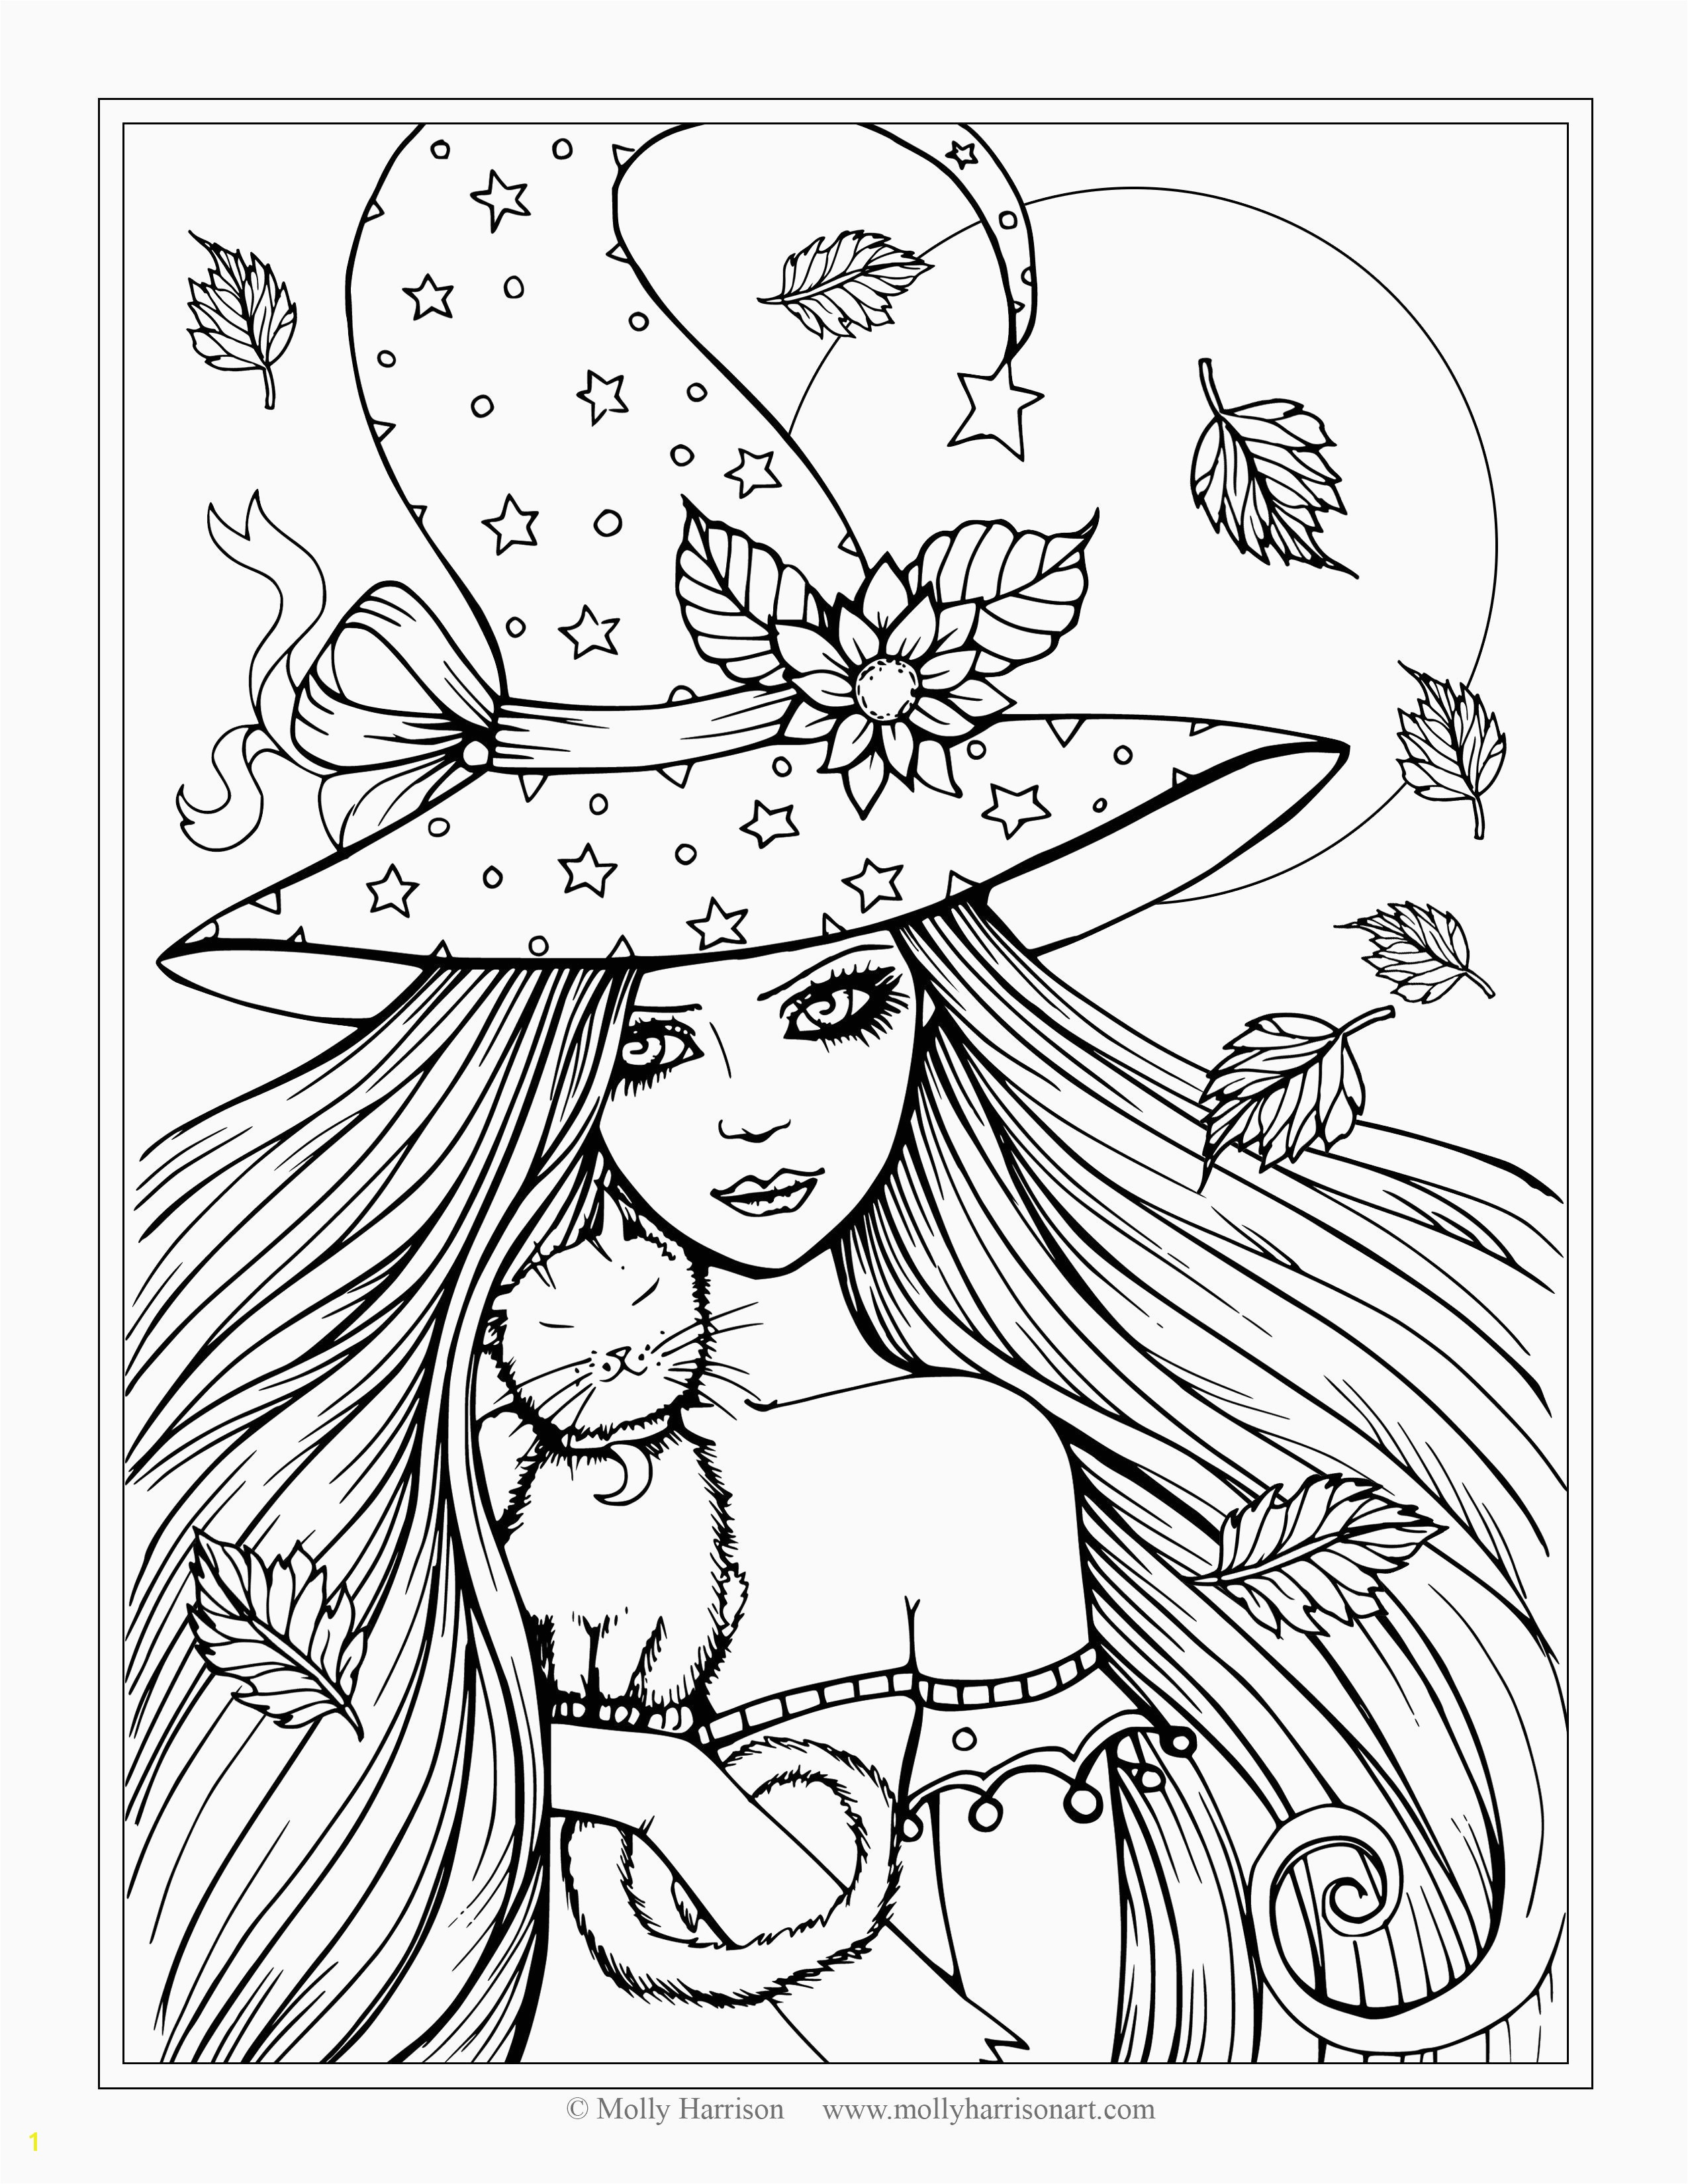 Printable Free Coloring Pages For Adults Best Printable Cds 0d – Funprintable Free Coloring Pages